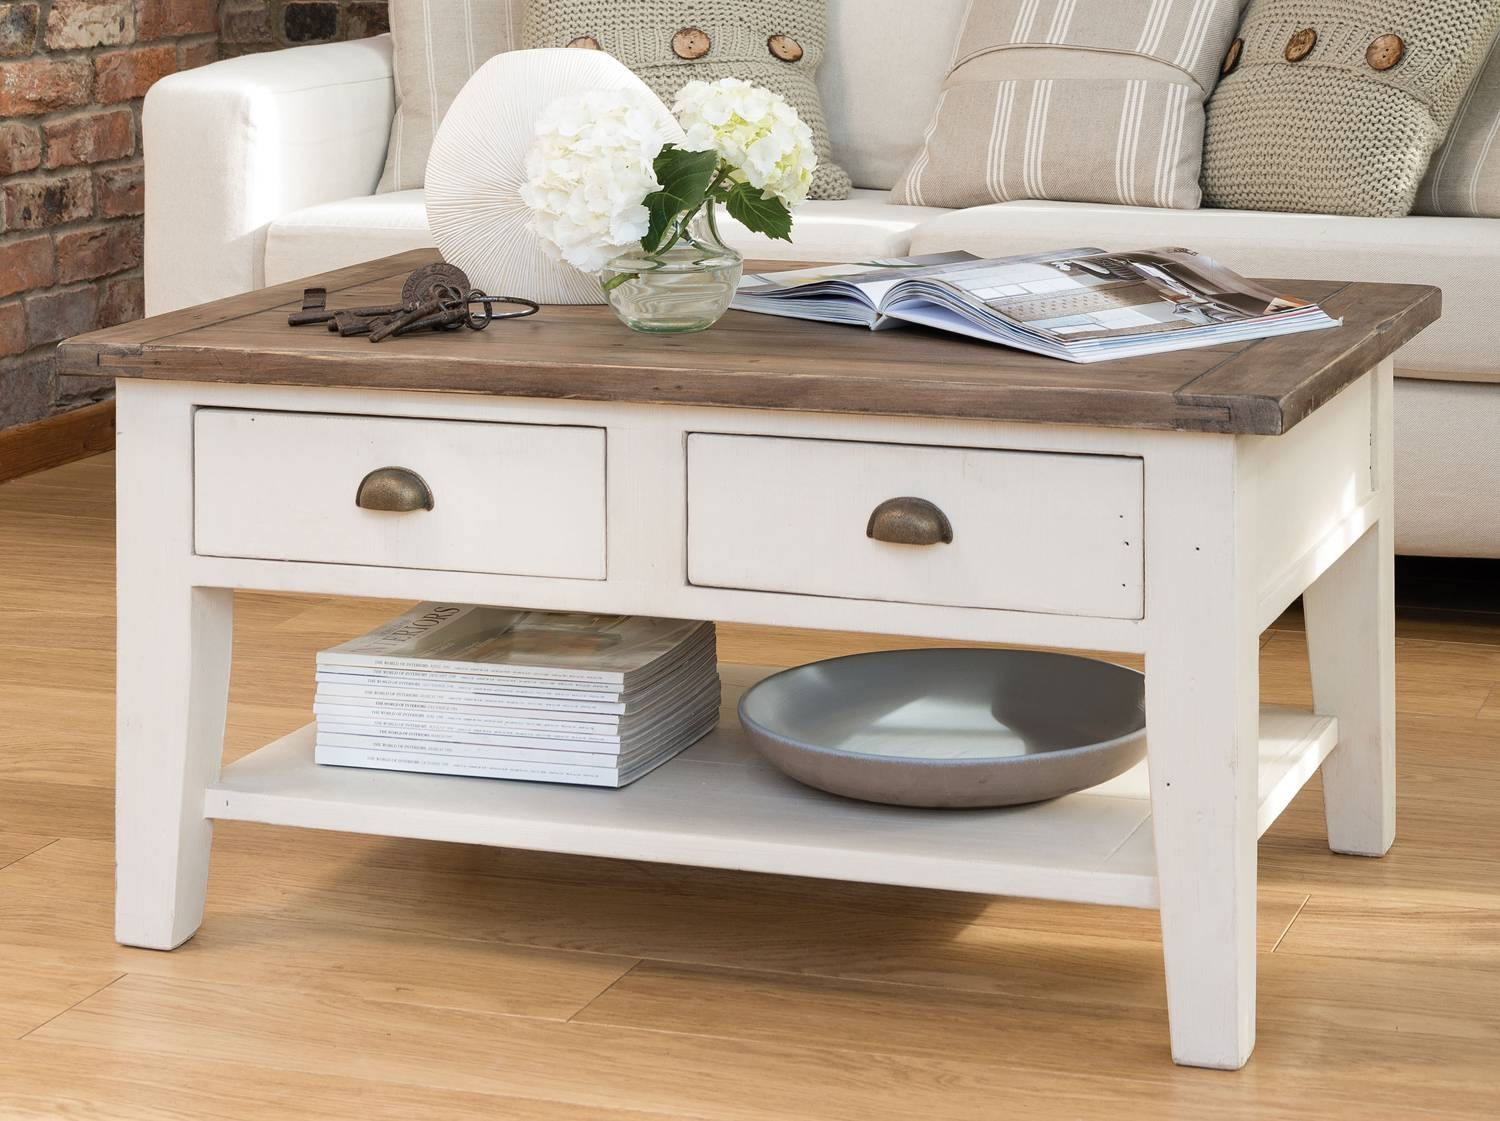 Coffee Table: Astonishing French Country Coffee Table Ideas inside French Style Coffee Tables (Image 6 of 30)